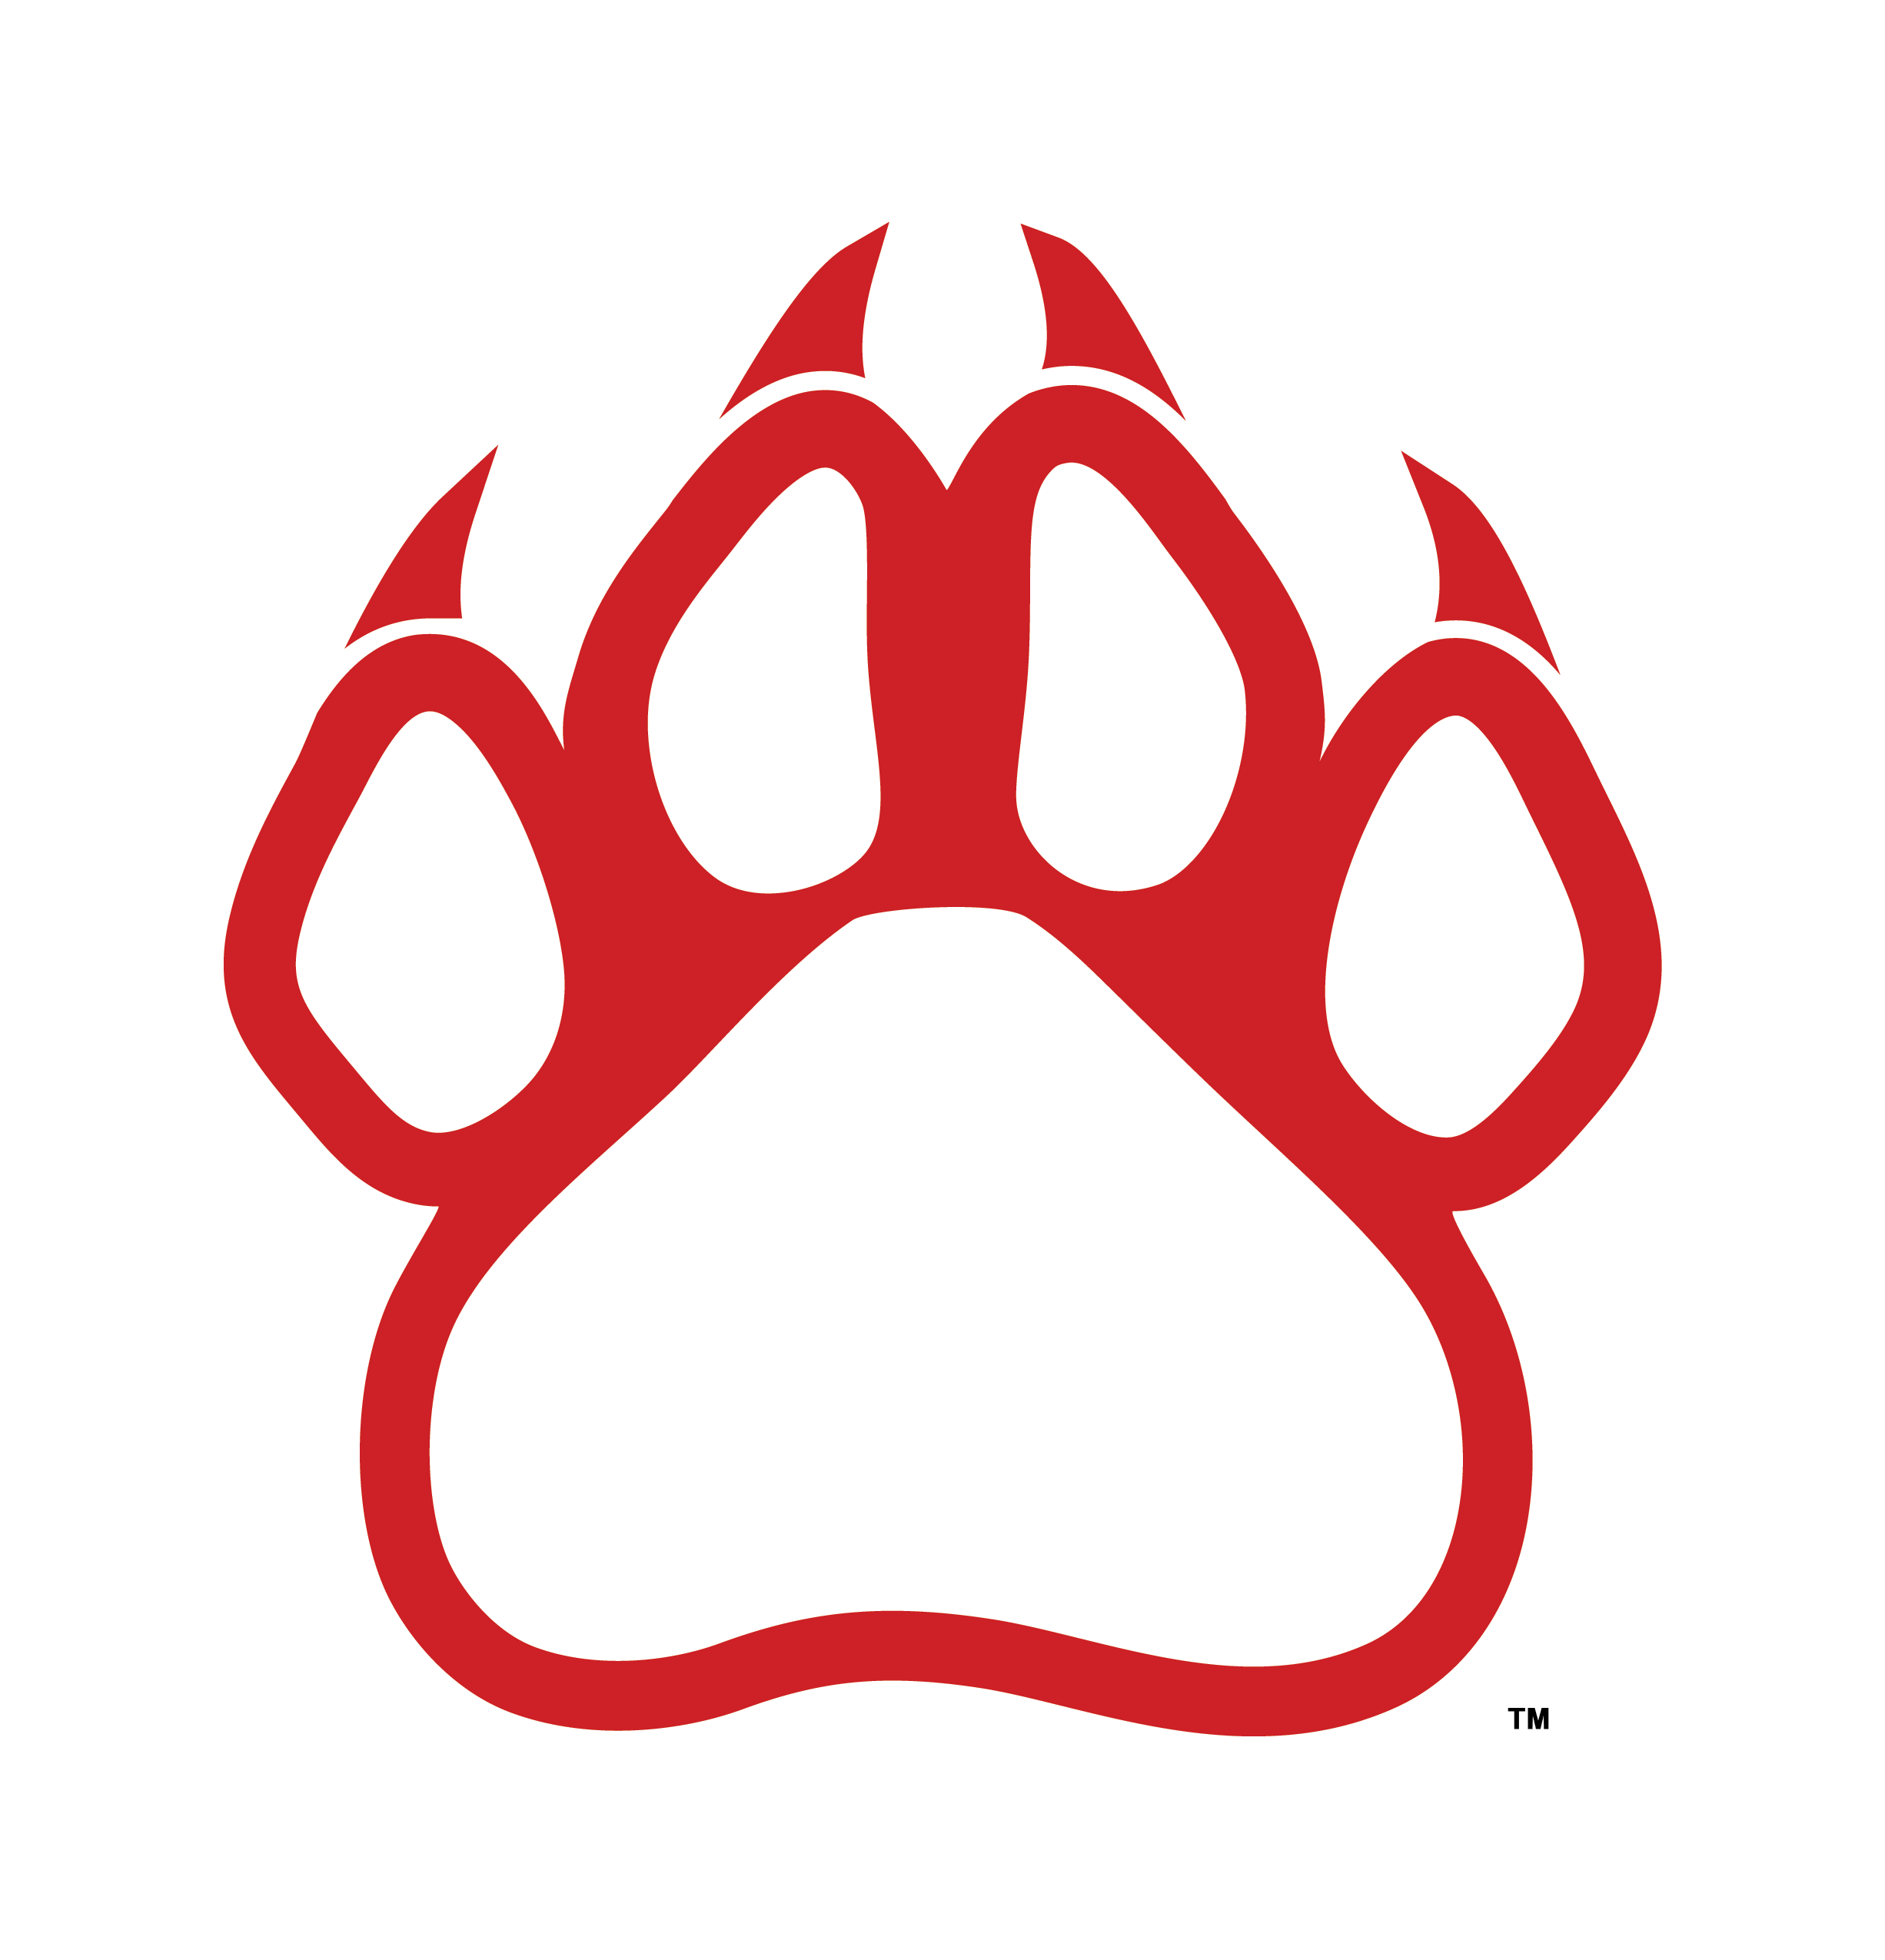 Paw school spirit clipart.